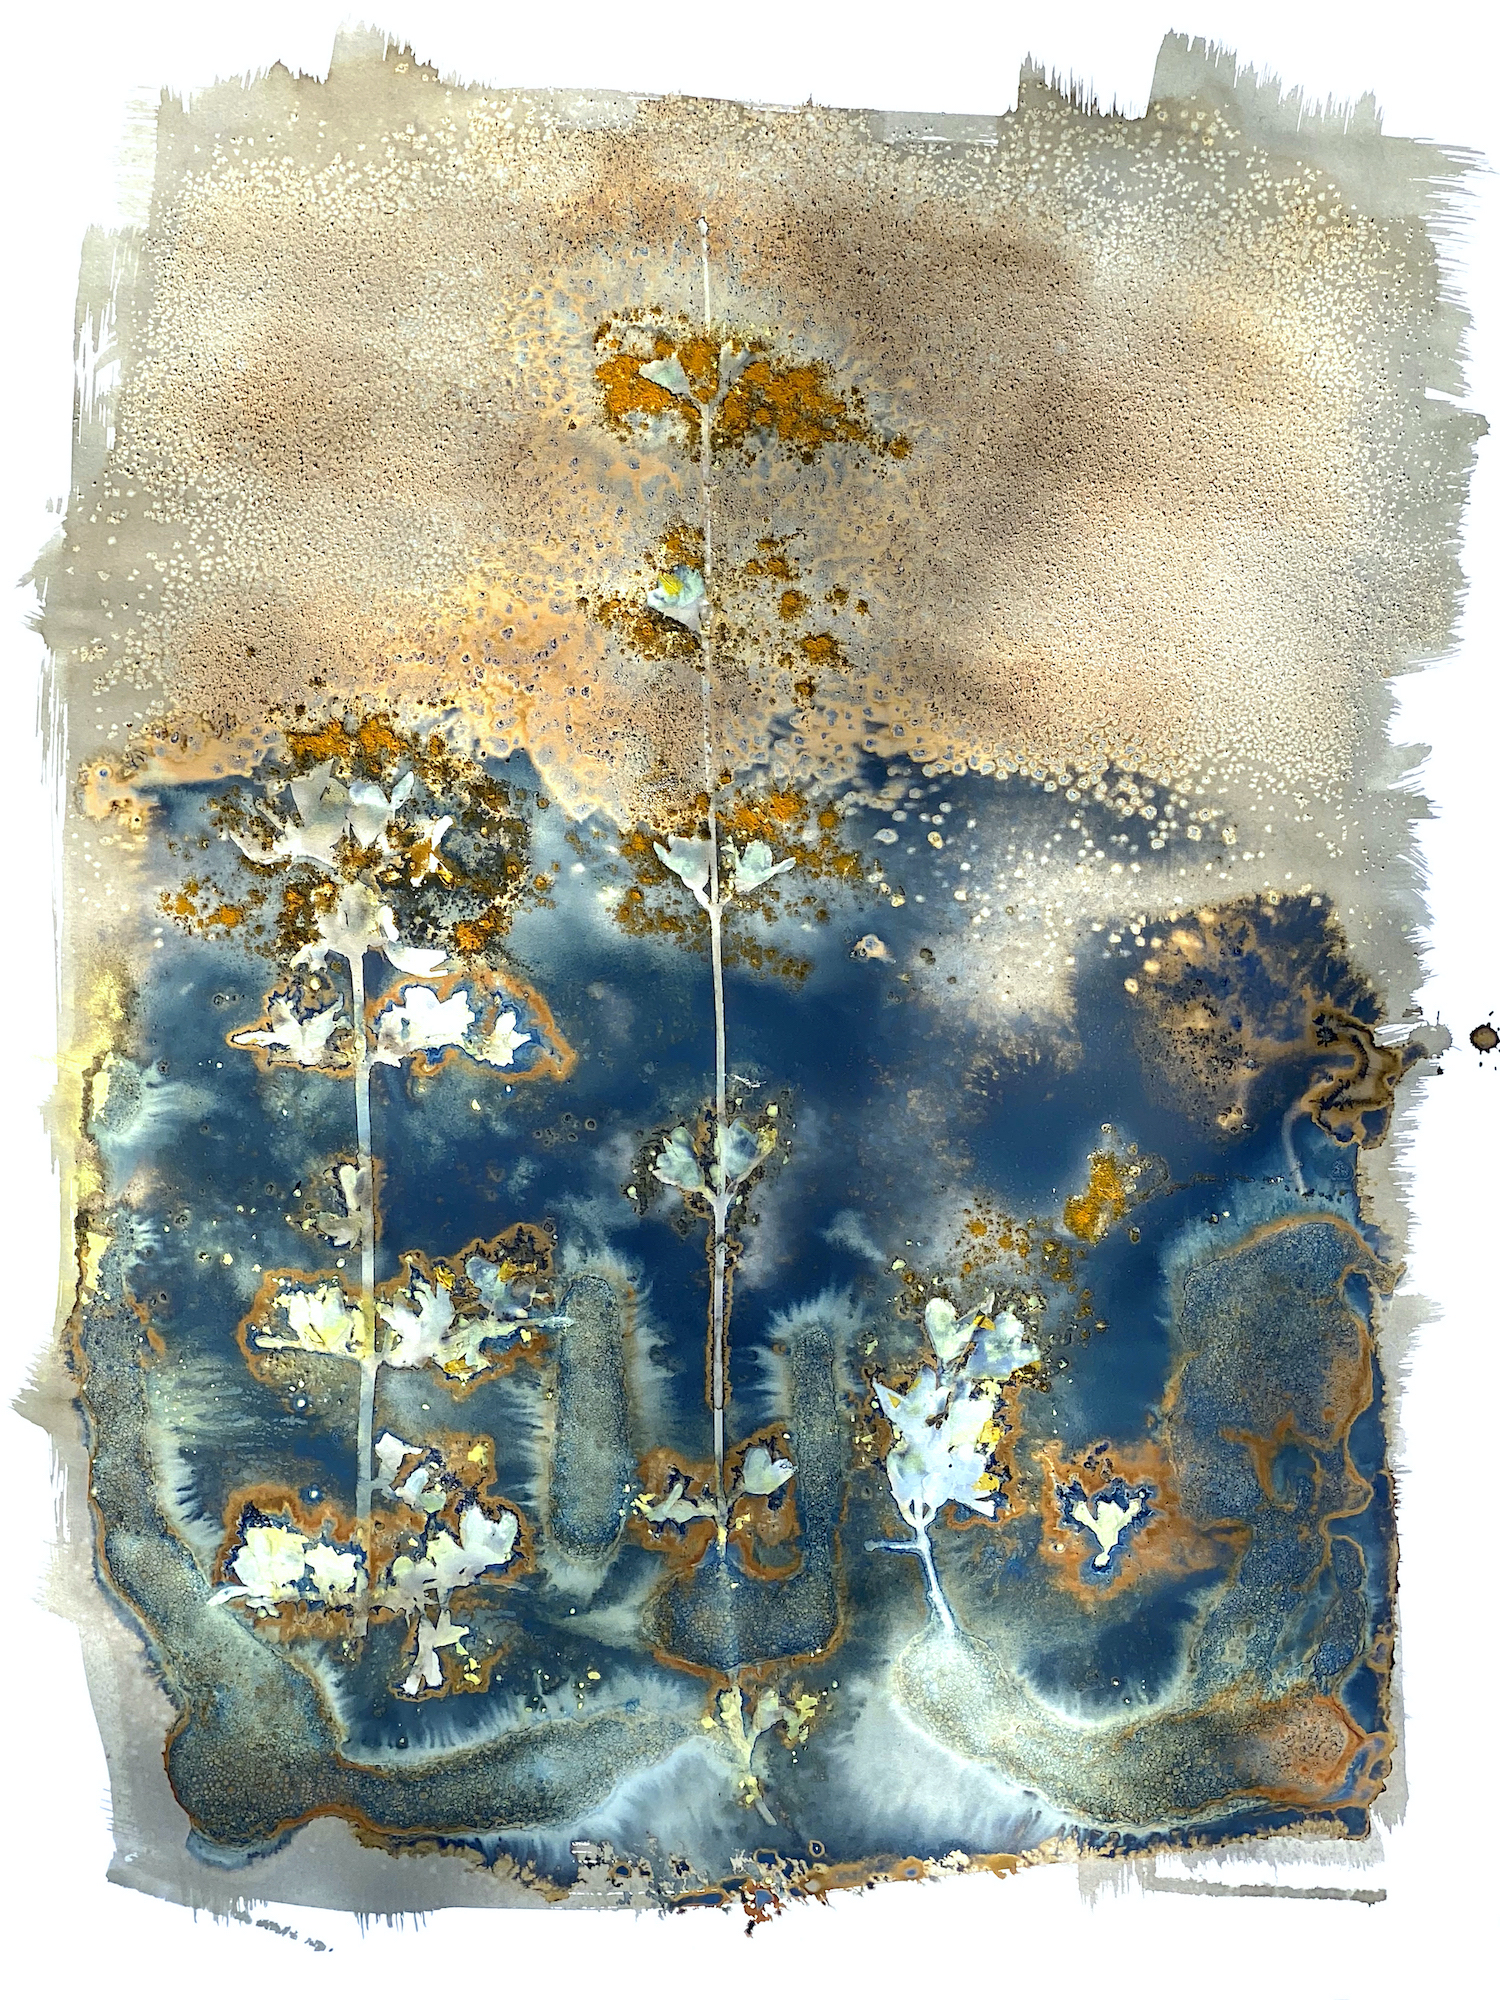 Honorable Mention - Forsythias at Sea